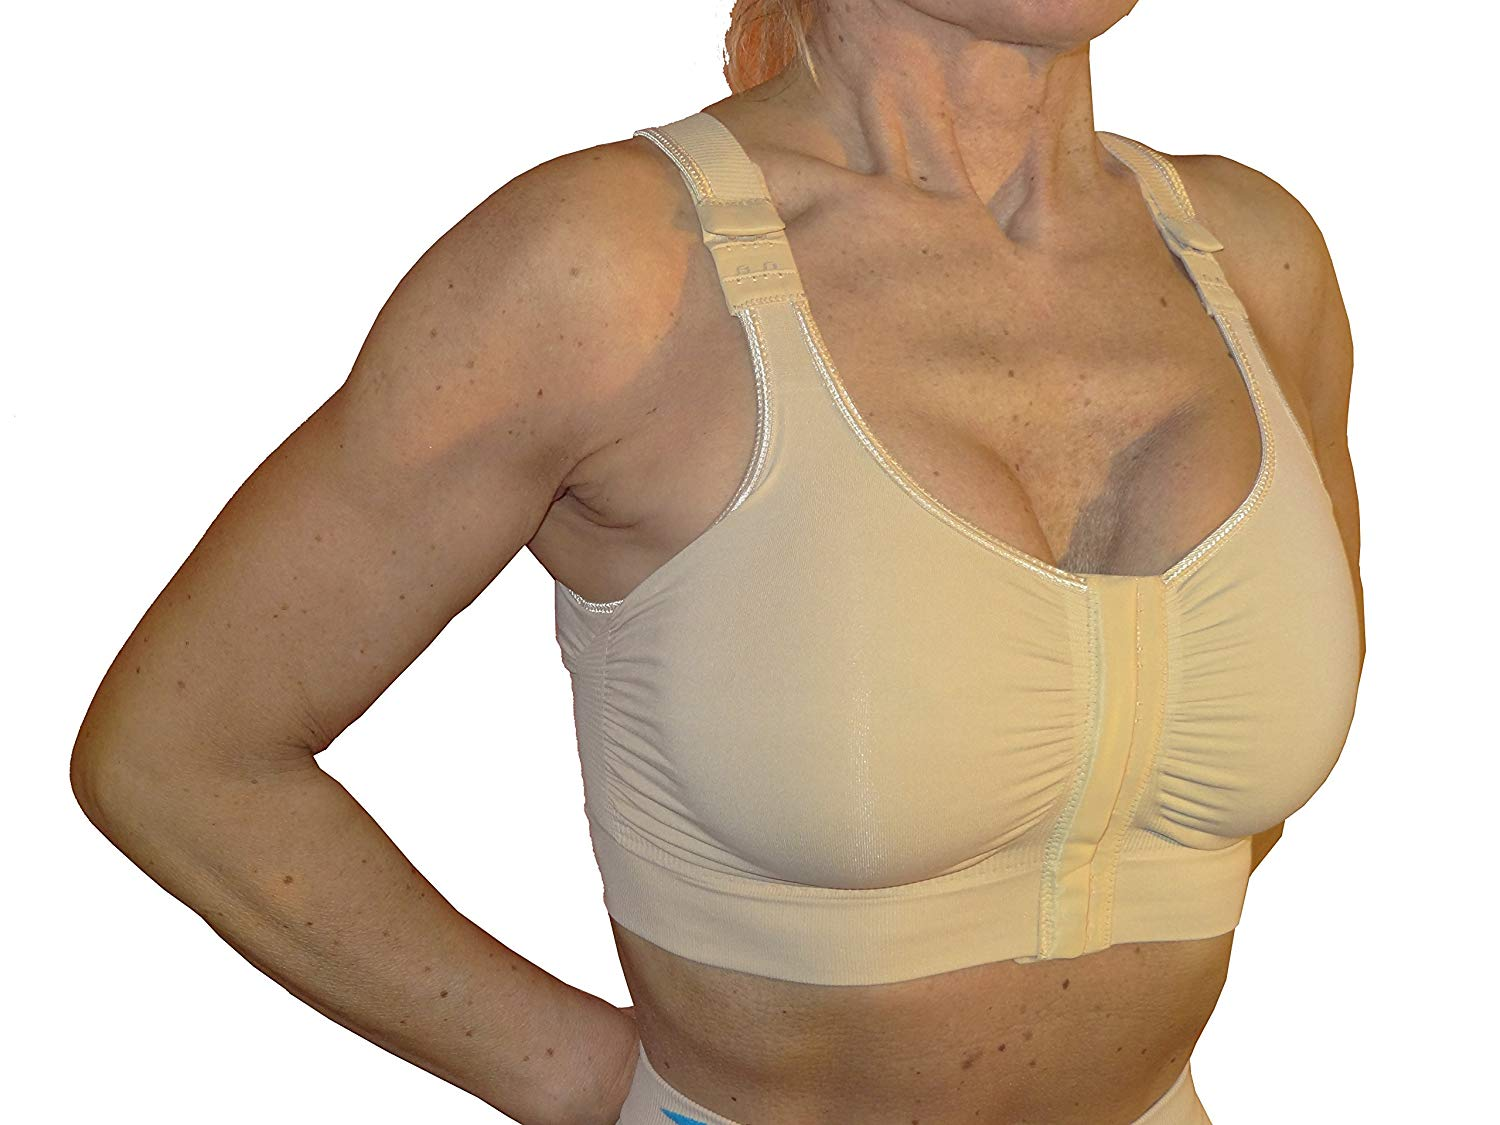 Post-op Bra After Breast Enlargement Or Reduction - Nude Size 3XL